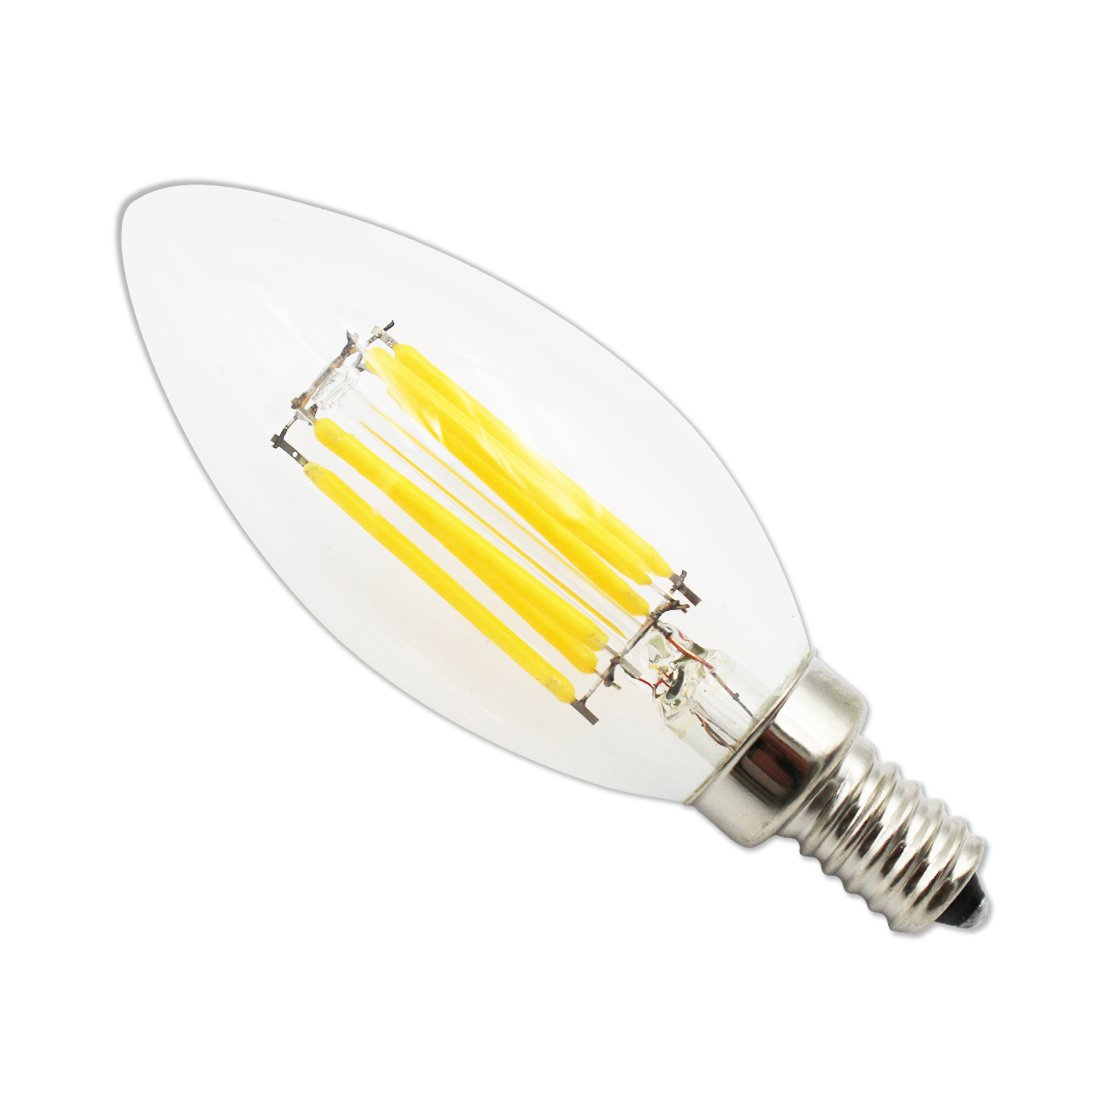 LEDIARY 6W Dimmable LED Filament Candle Light Bulbs 2700K Warm White 60W Incandescent Replacement E12 Candelabra Base B11 Torpedo Shape Bullet Top,Pack of 5